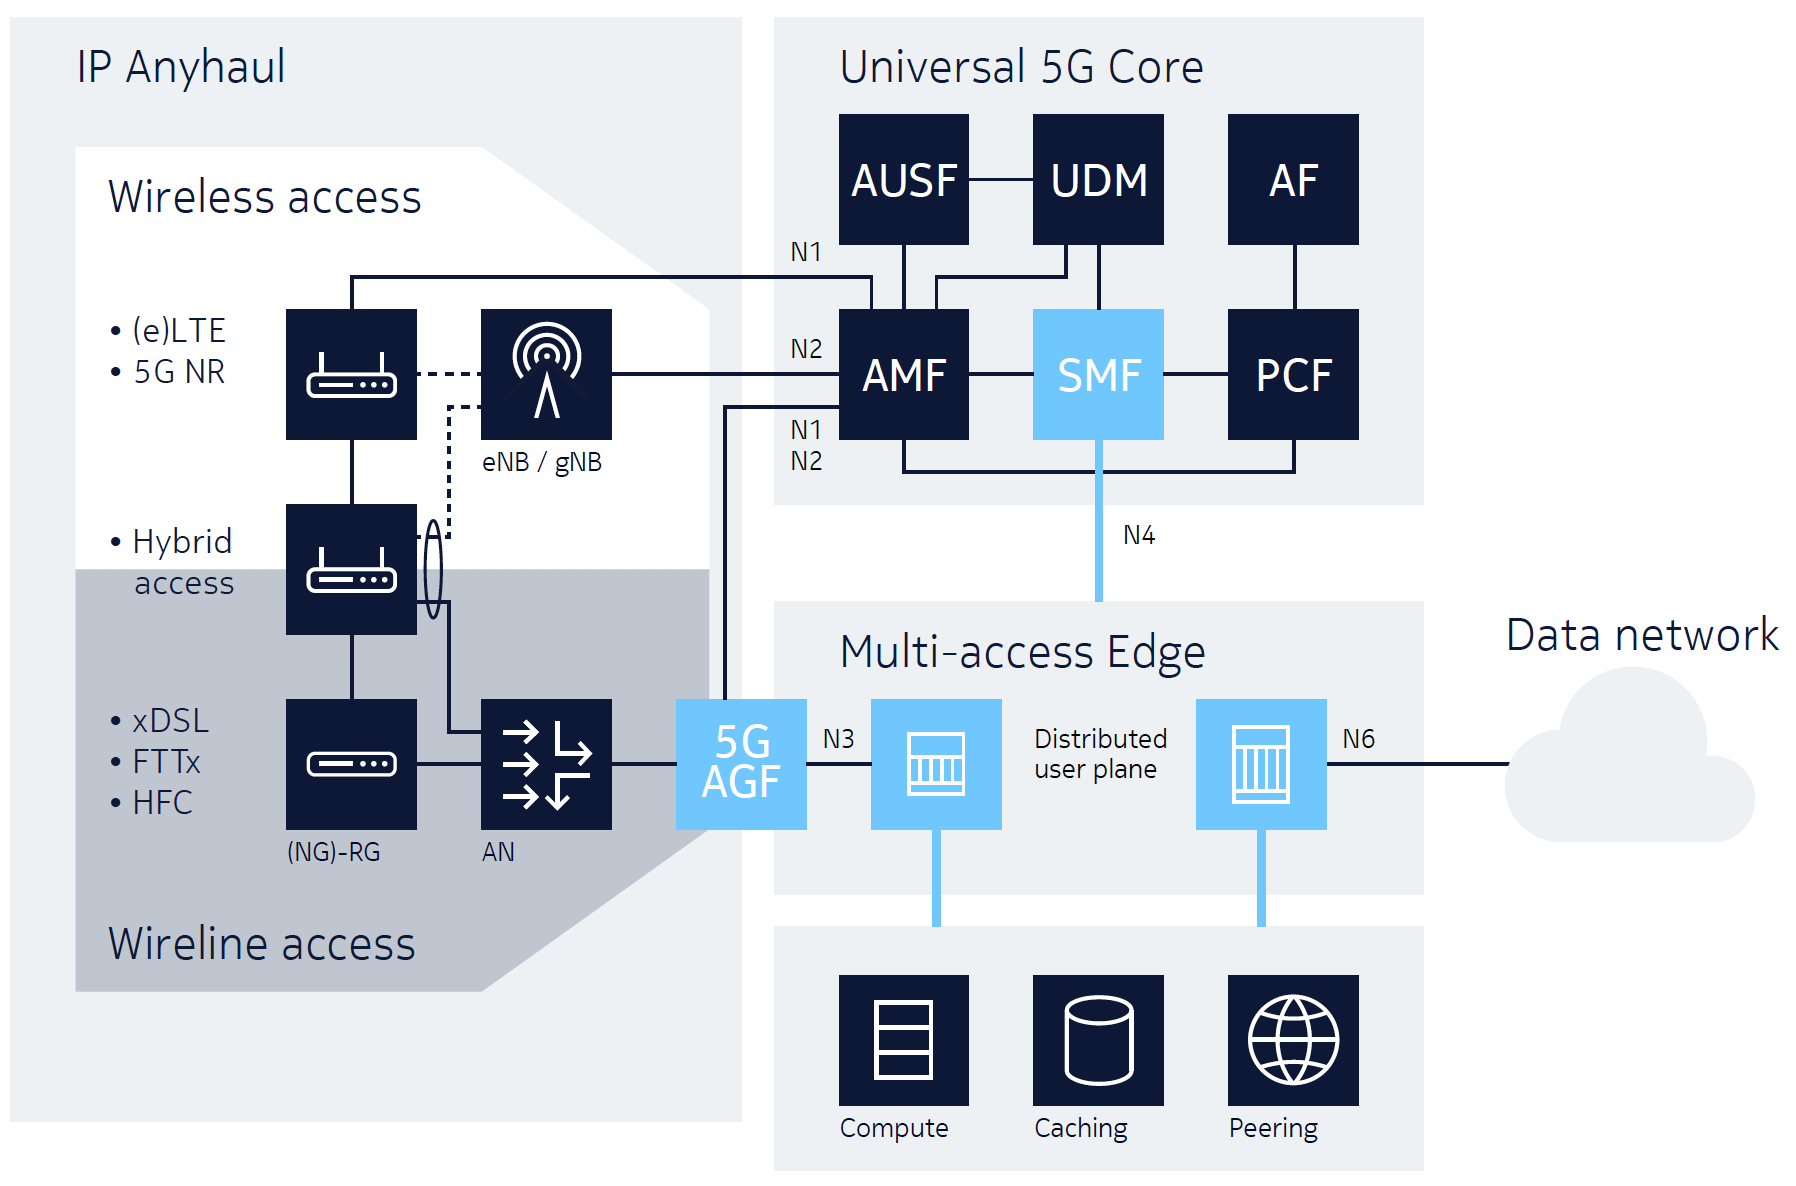 Figure 6. 5G fixed-mobile convergence on a multi-access edge and universal 5G core